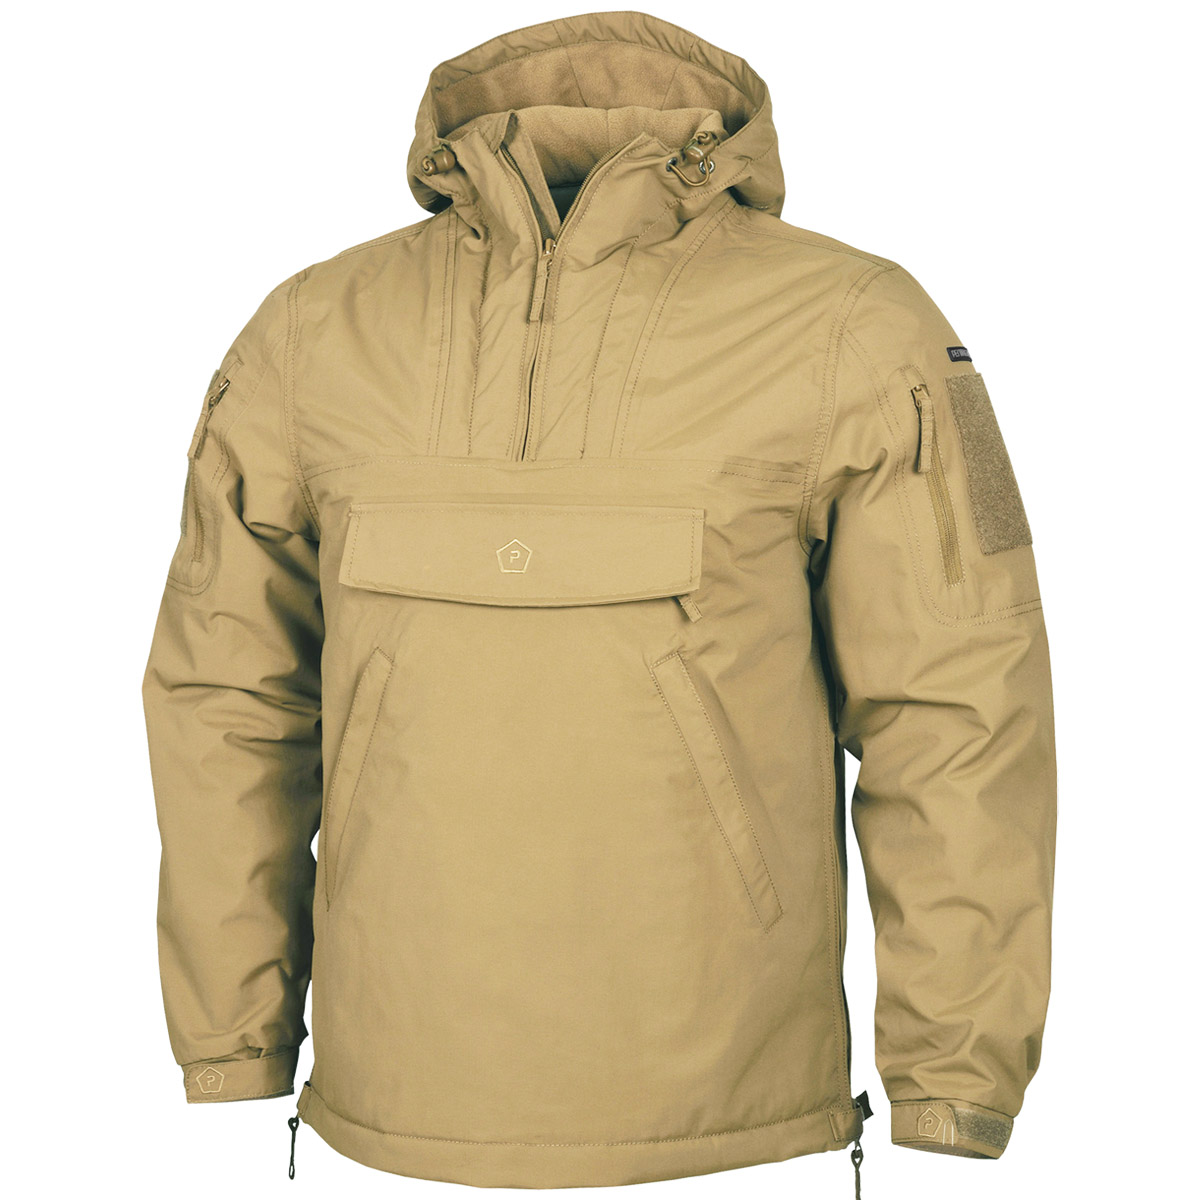 Men's Jackets + Coats results 1 Stussy Contrast Ripstop Anorak Jacket $ + 3 colors Online Only. Quick Shop Jackets + Coats for Men. Update your look with men's jackets from Urban Outfitters! Shop our selection of outerwear for men, including men's coats, denim trucker jackets, bombers, trench coats, men's moto jackets.